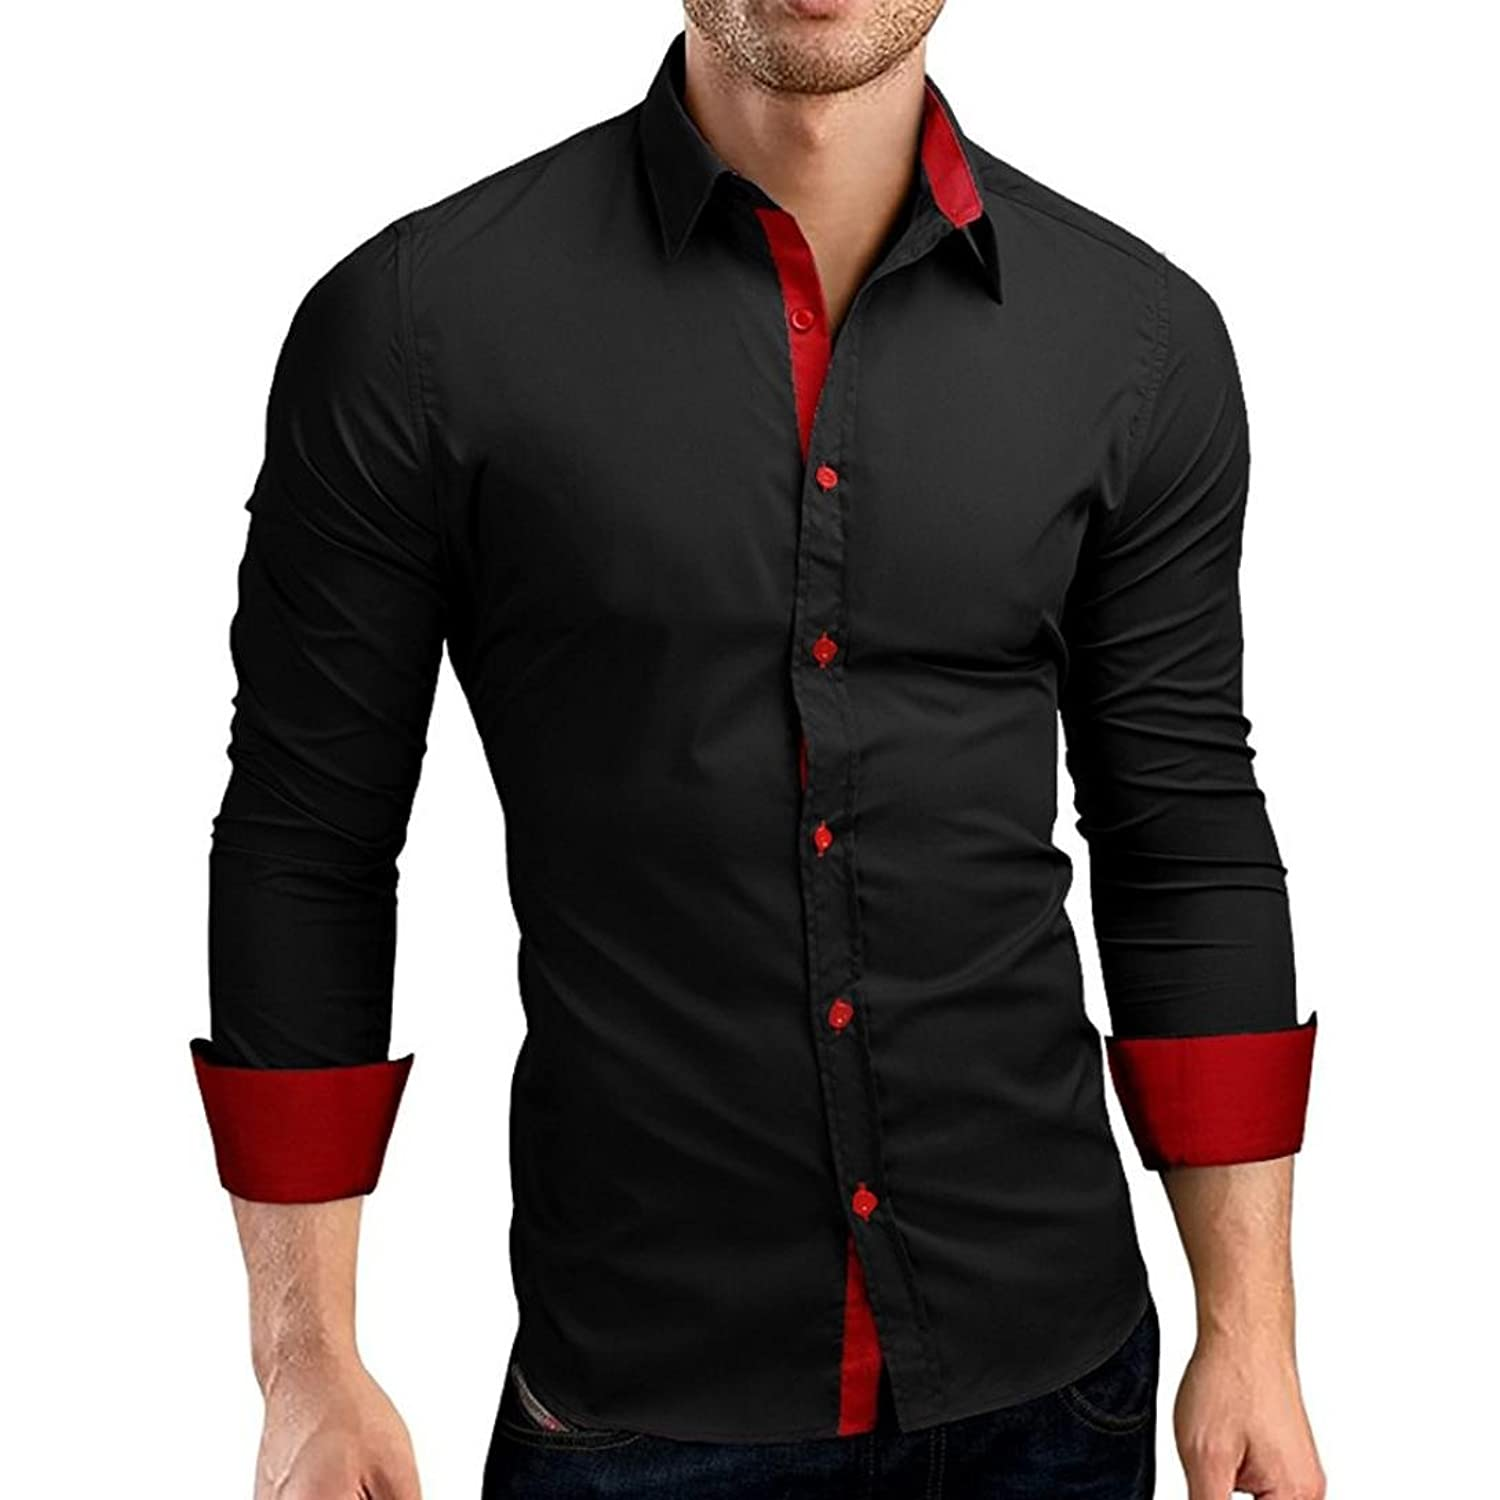 8023d6299c3 ❊Material Polyester♥♥Men s casual slim fit long sleeve henley t-shirts  cotton shirts men s premium fitted sueded crew men s regular-fit long-sleeve  plaid ...